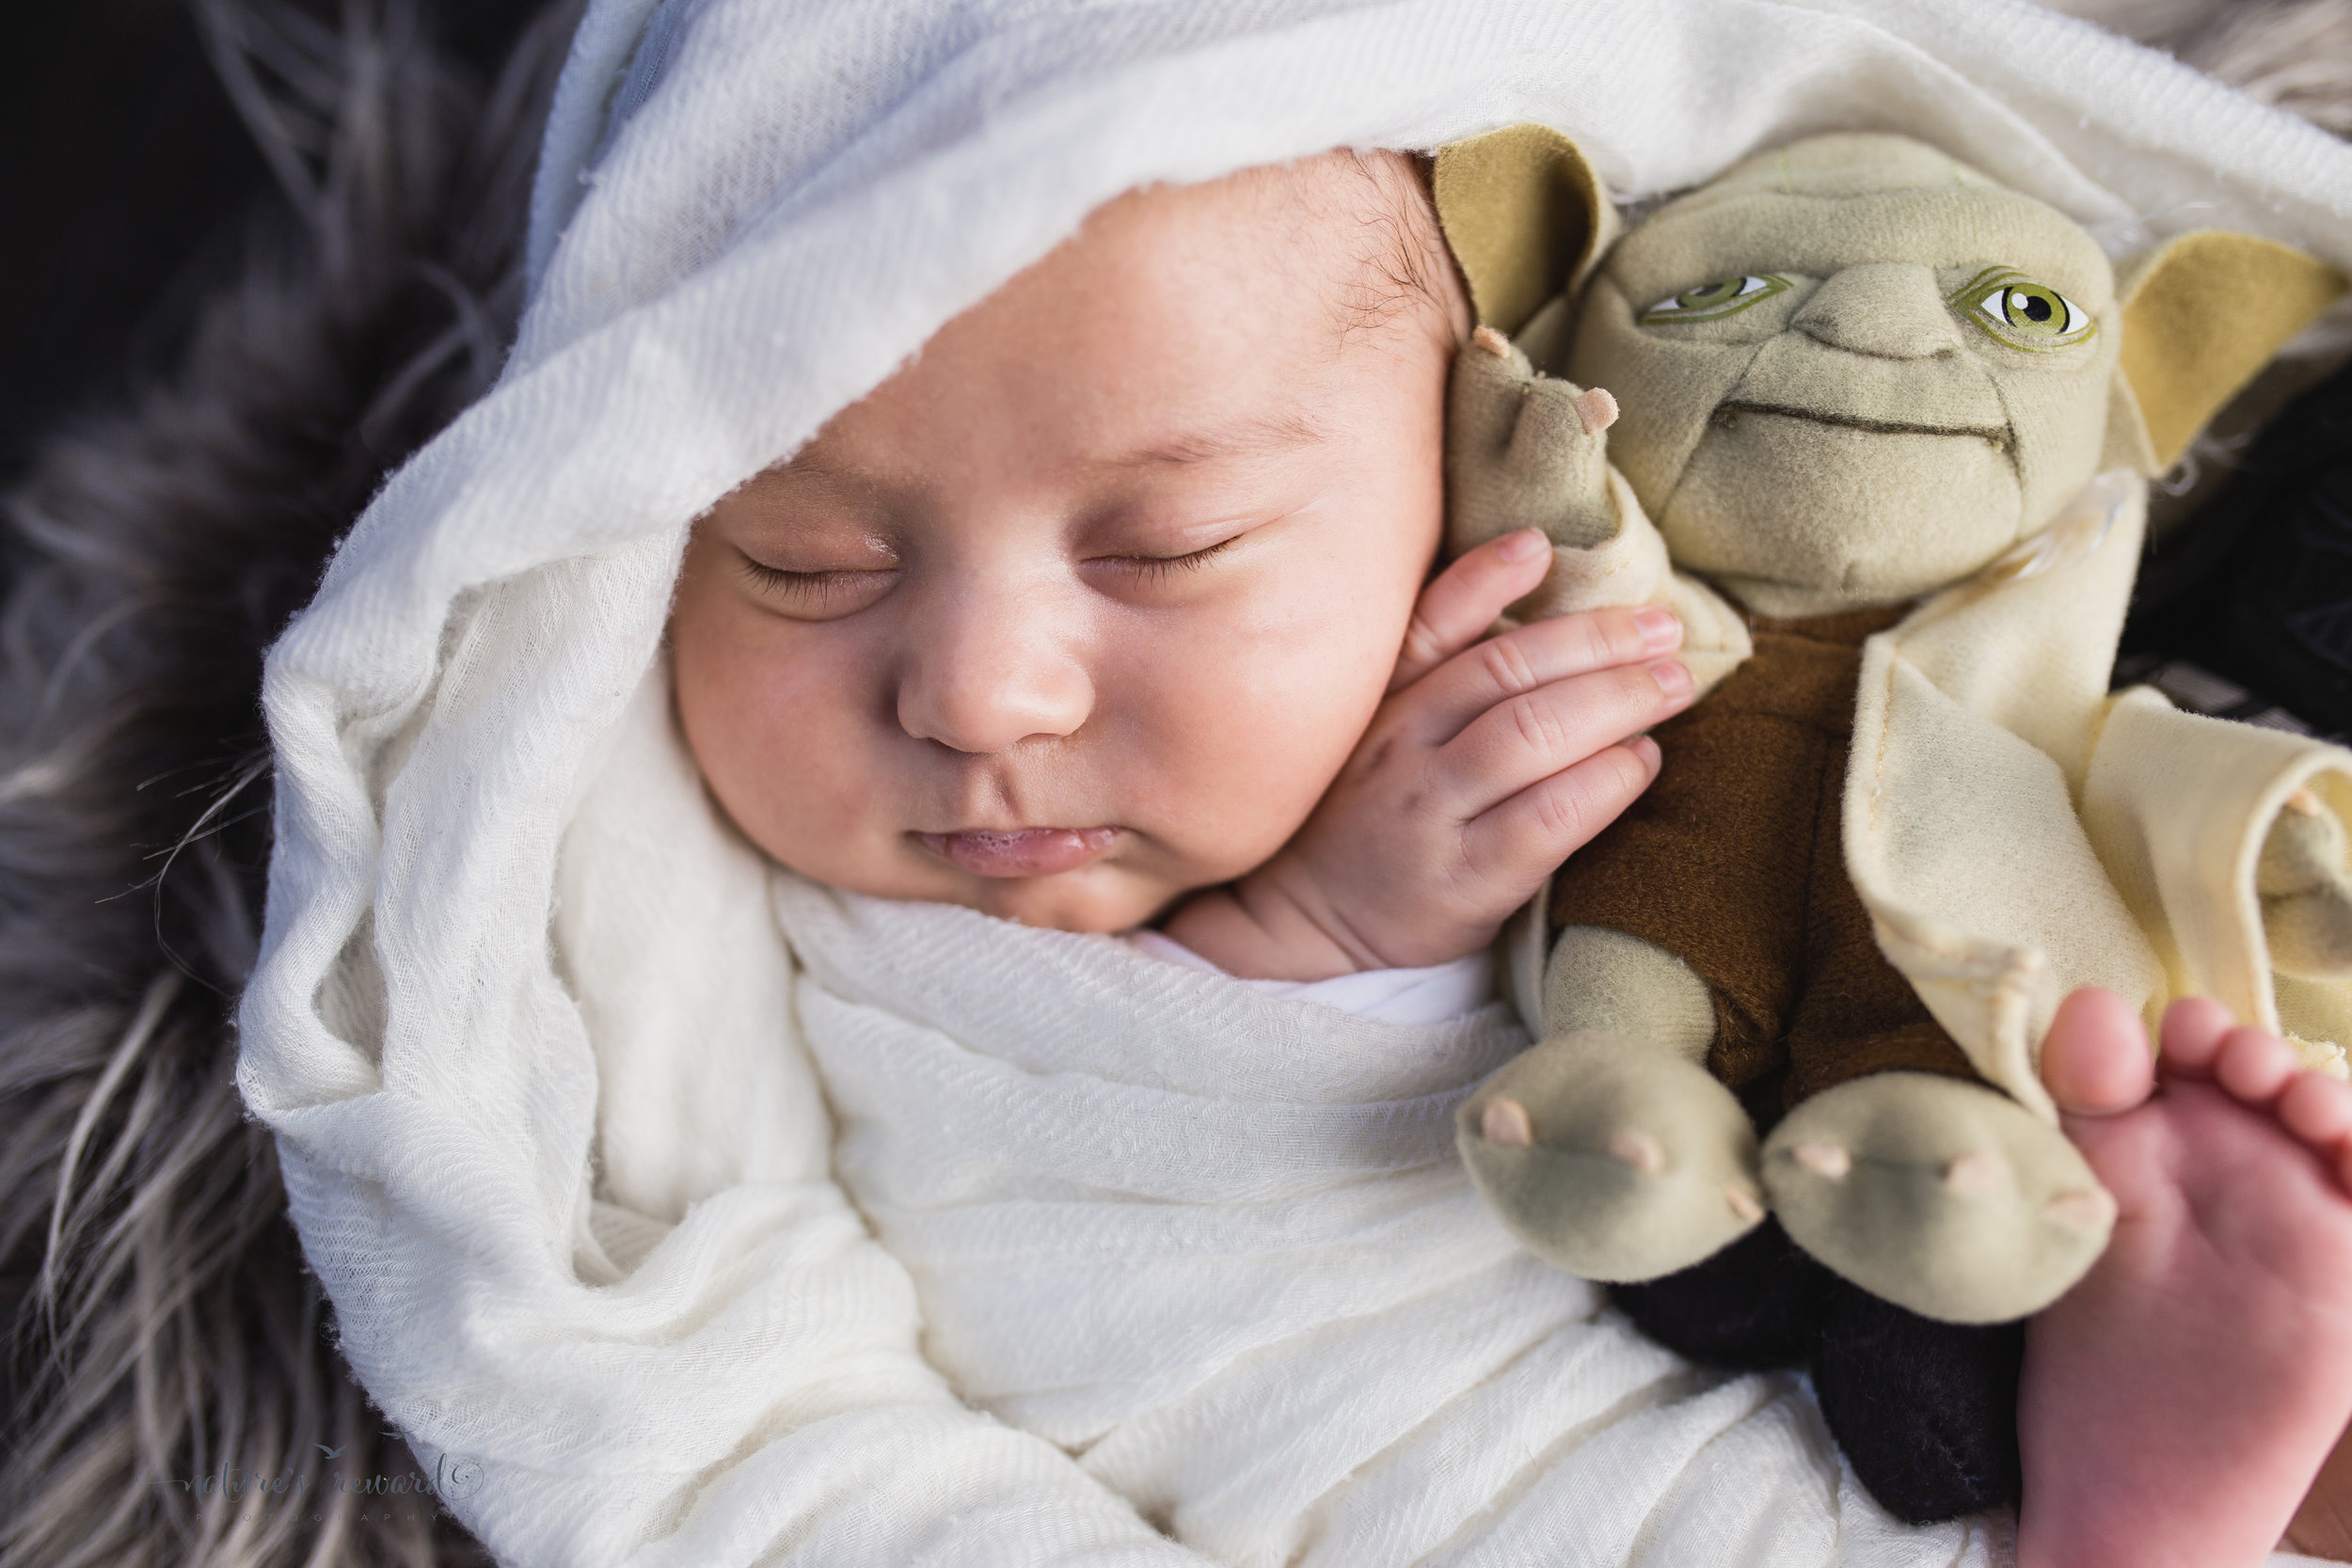 His close up portrait, with his dearest friend, Master Yoda.